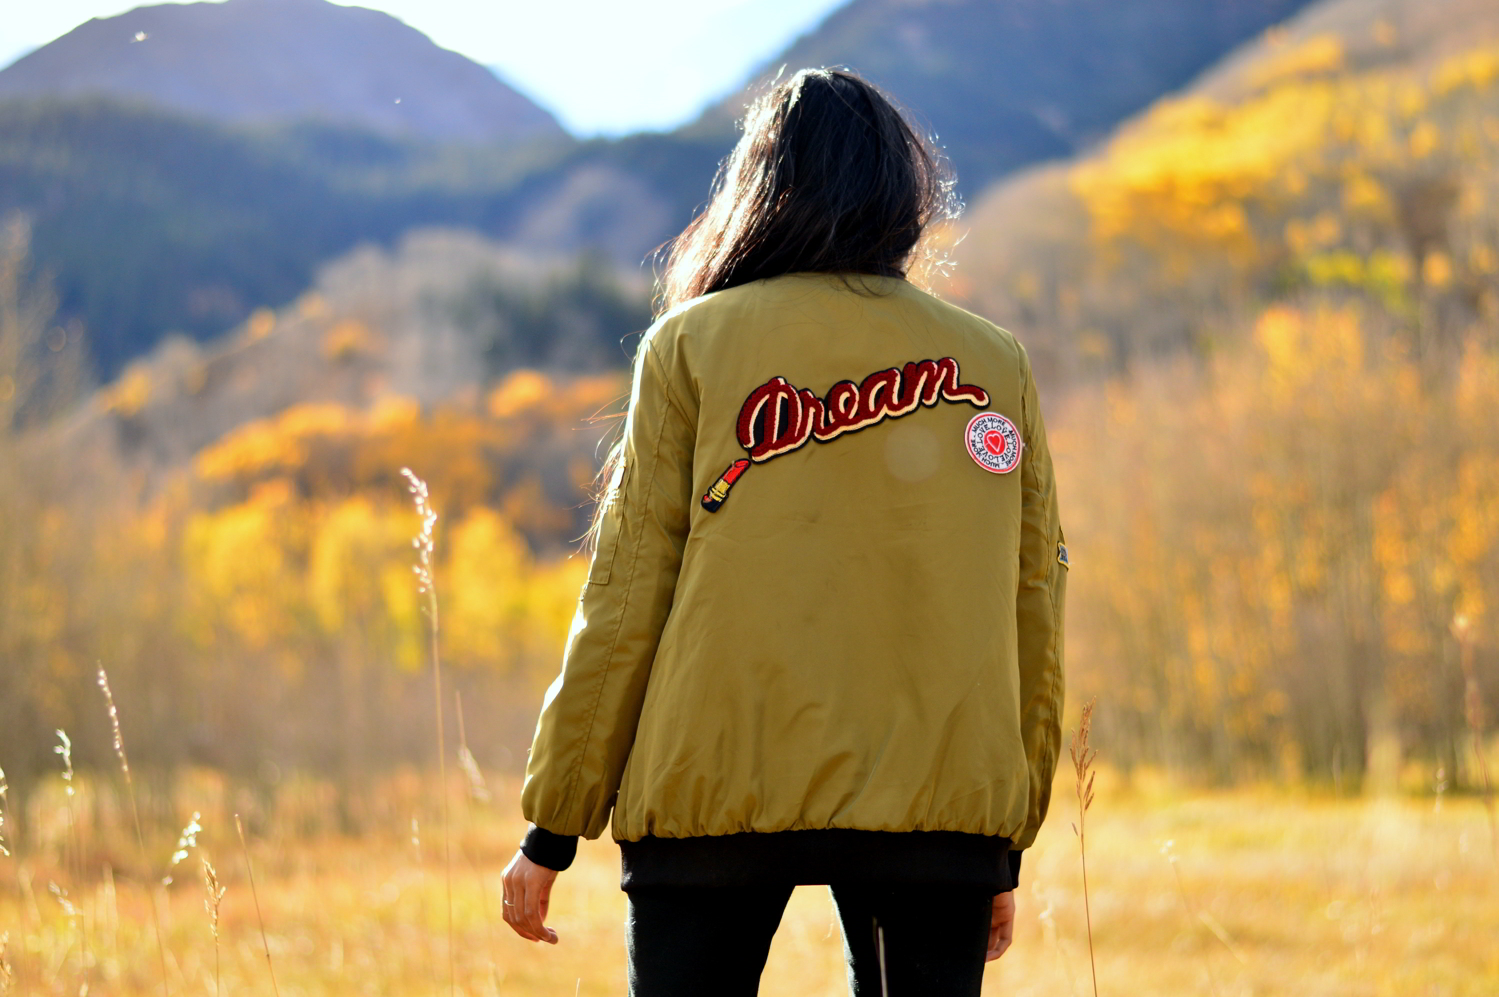 Patchwork-bomber-jacket-fall-fashion-blogger-outfit-colorado 3